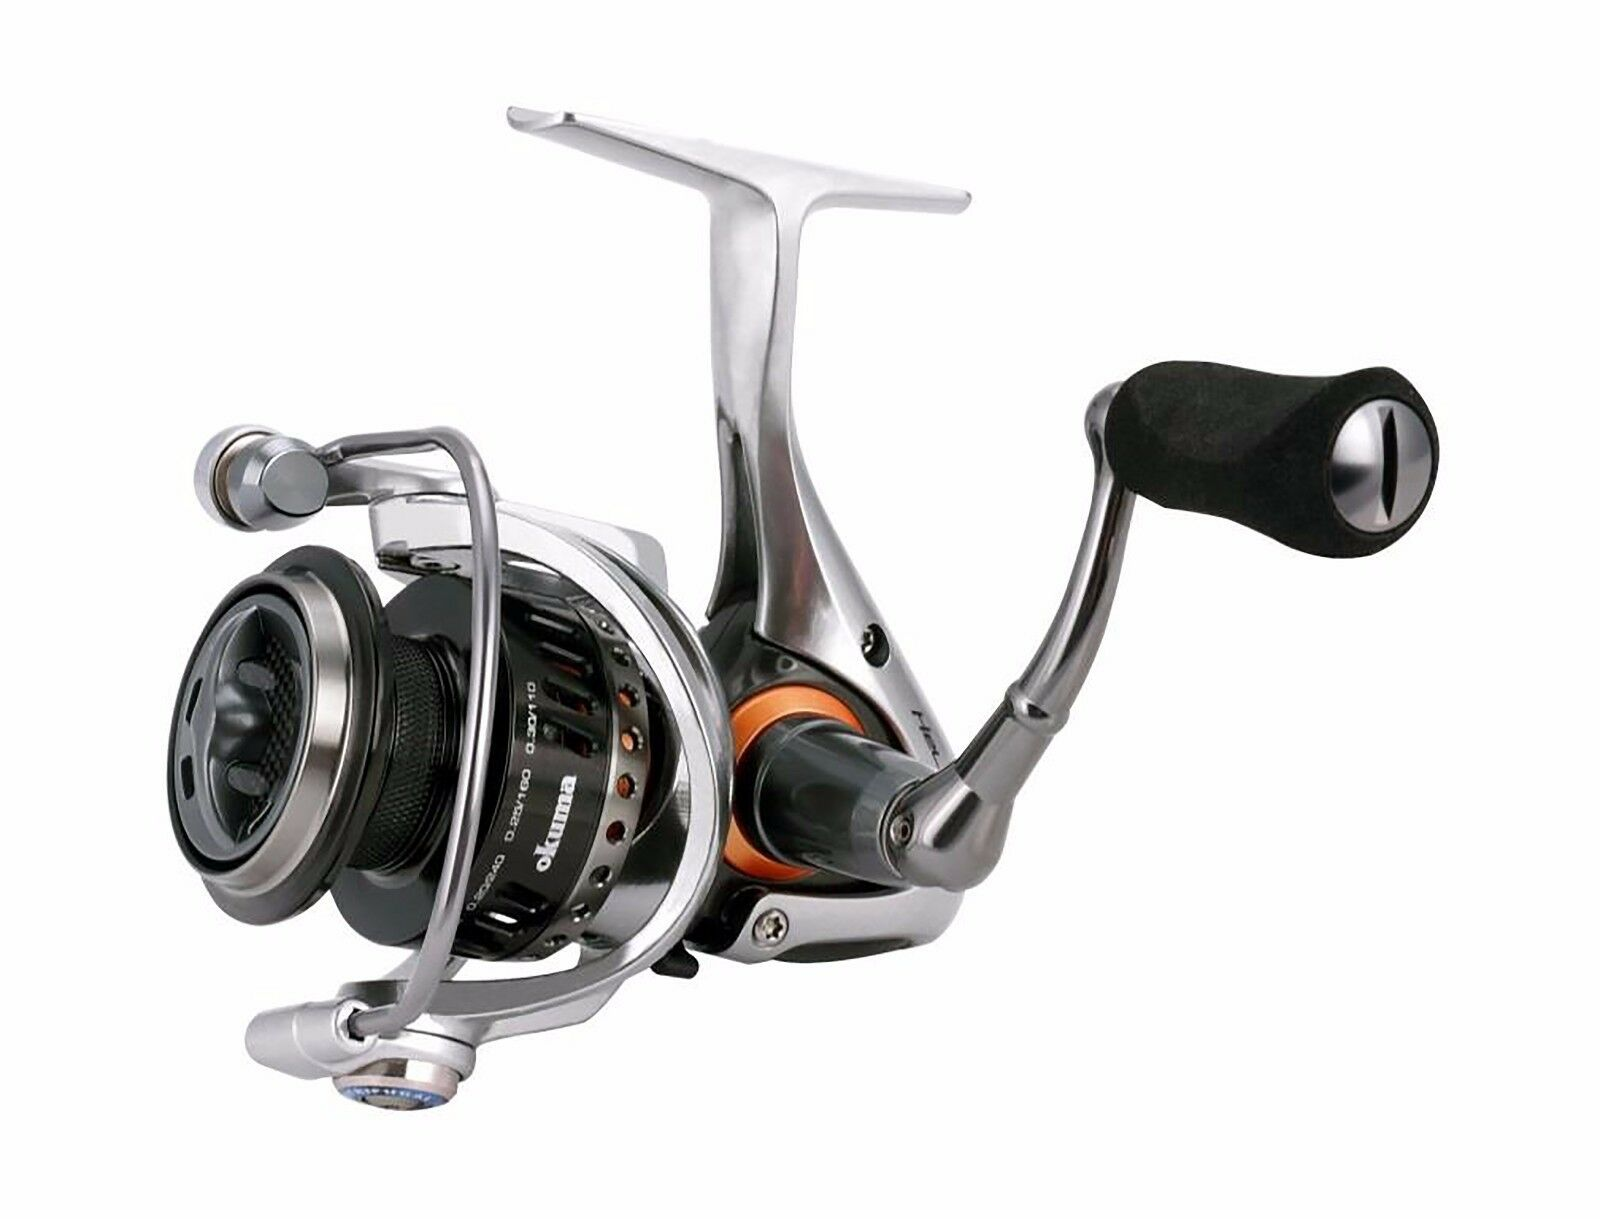 OKUMA HELIOS SX HSX-40s SPINNING REEL MATCH COARSE  FISHING ROACH TENCH BREAM  be in great demand